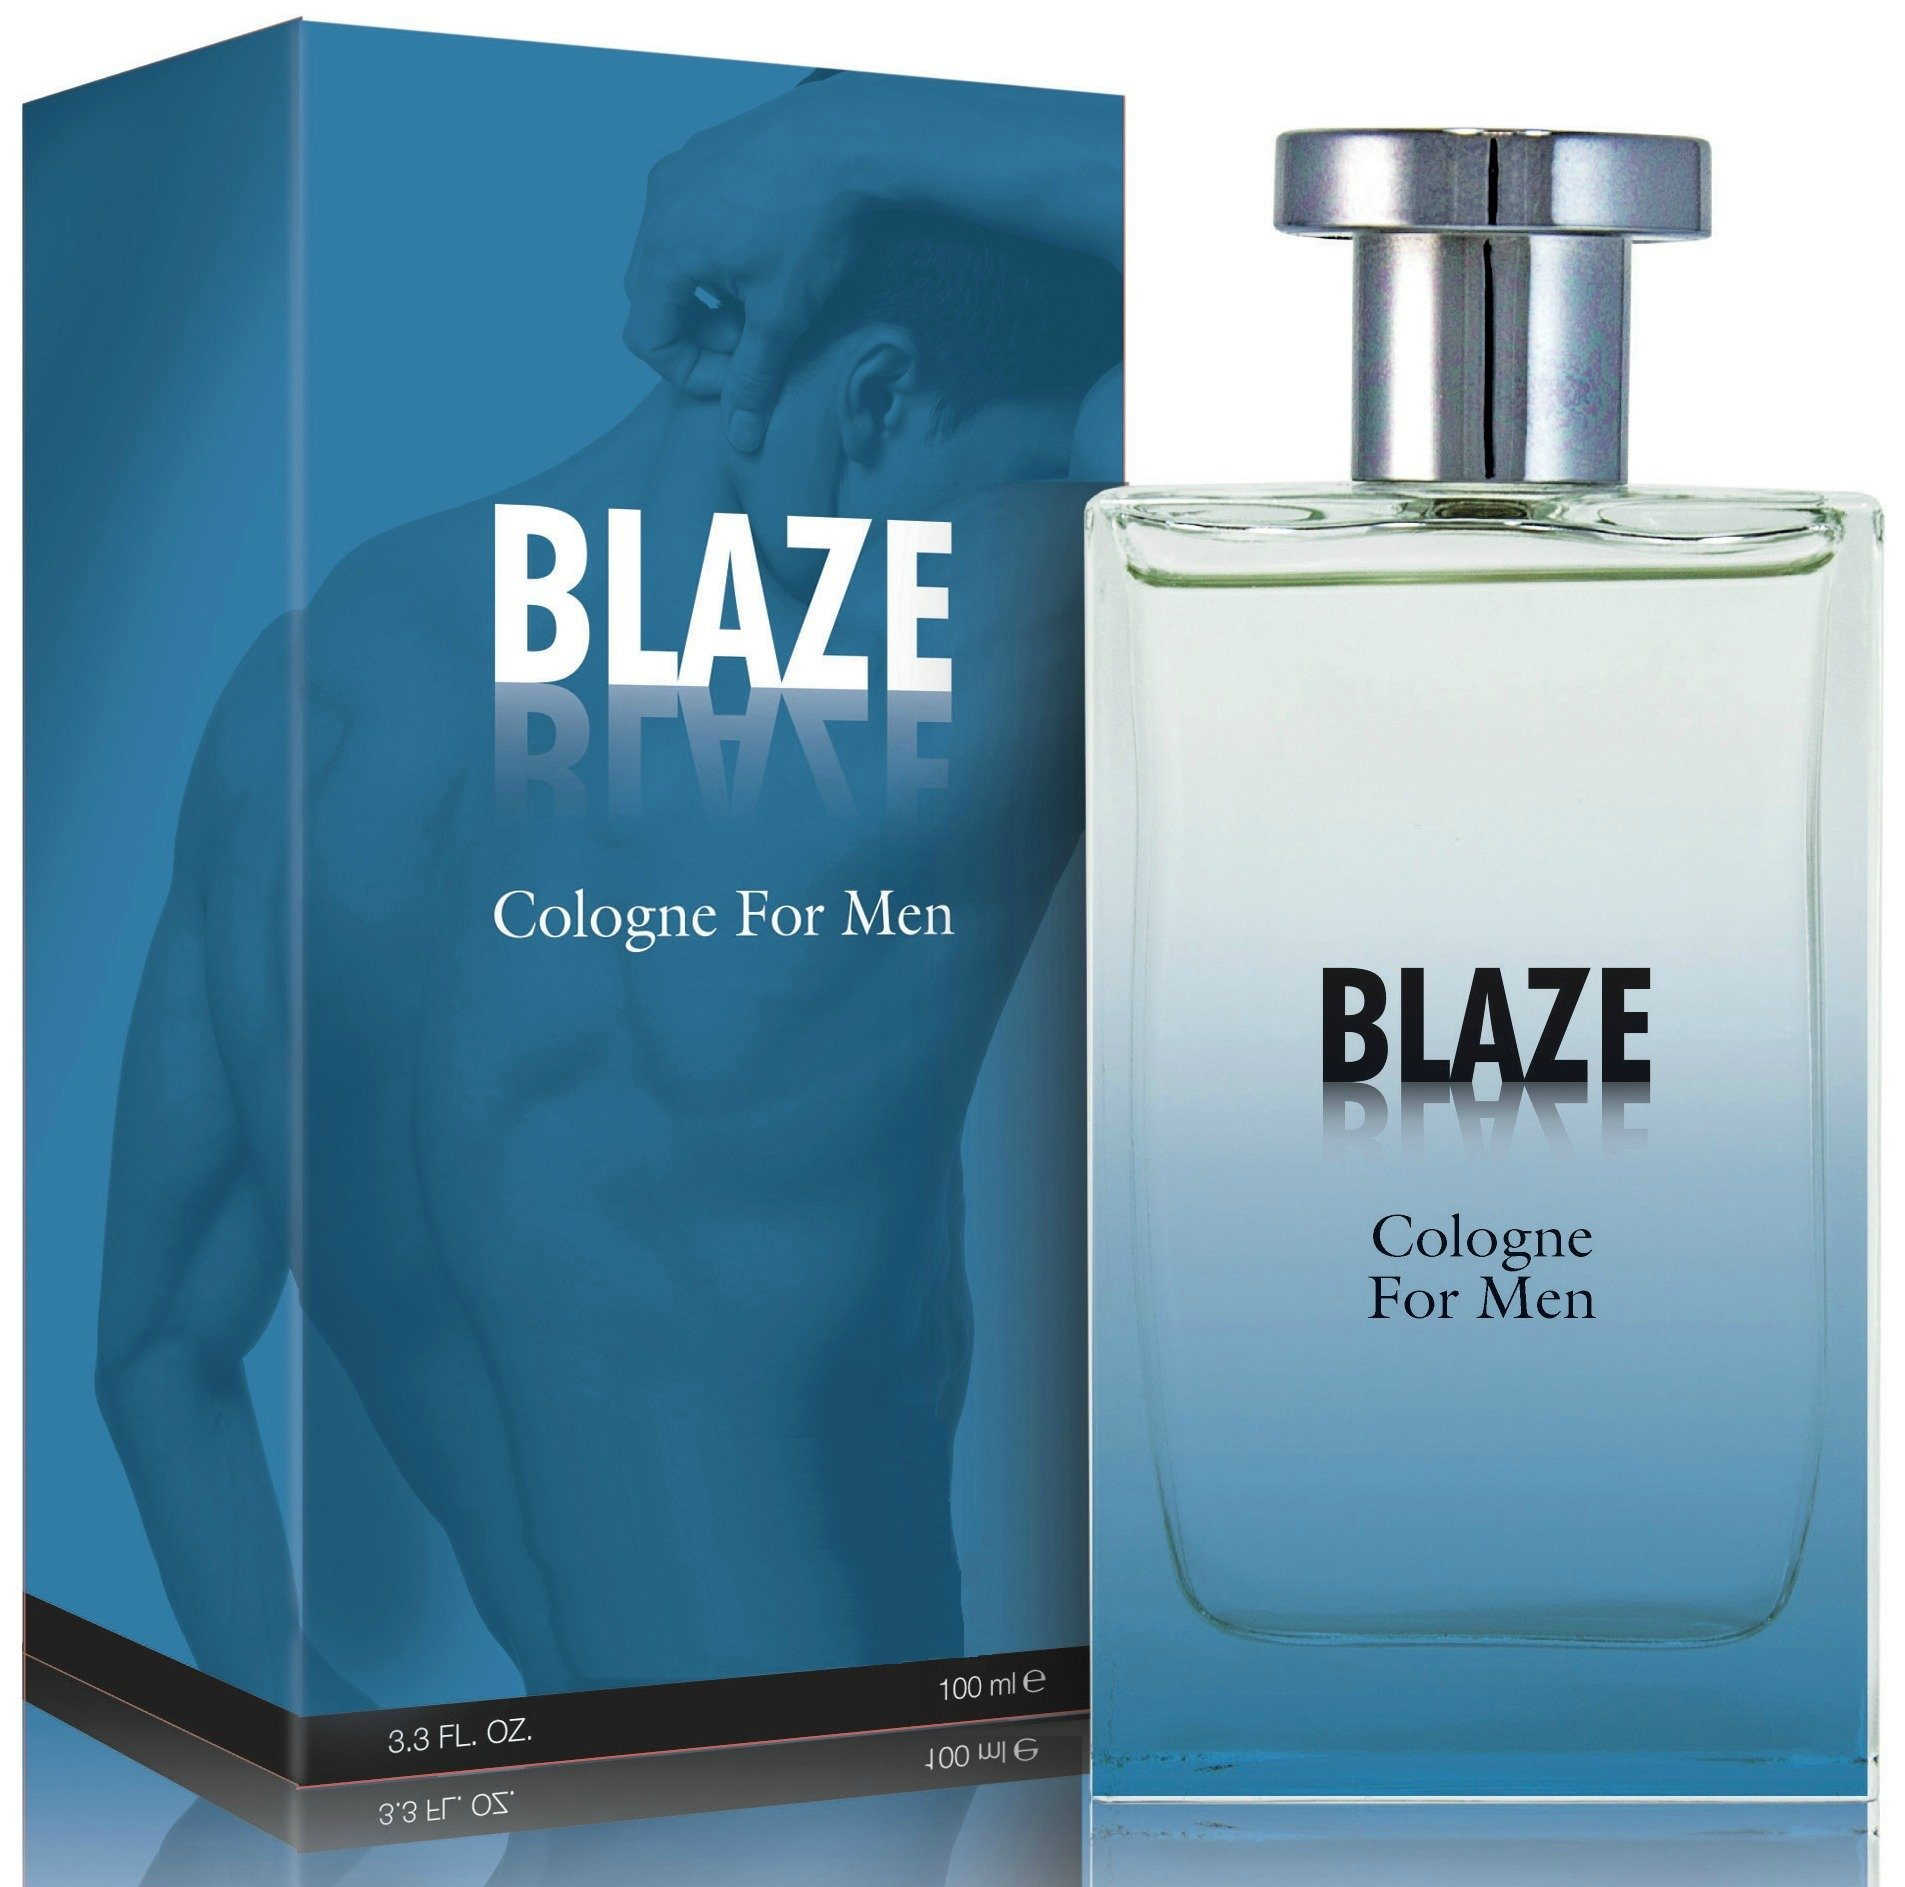 Blaze Cologne Spray for Men, 3.3 Ounces 100 Ml - Scent Similar to Abercrombie and Fitch Fierce